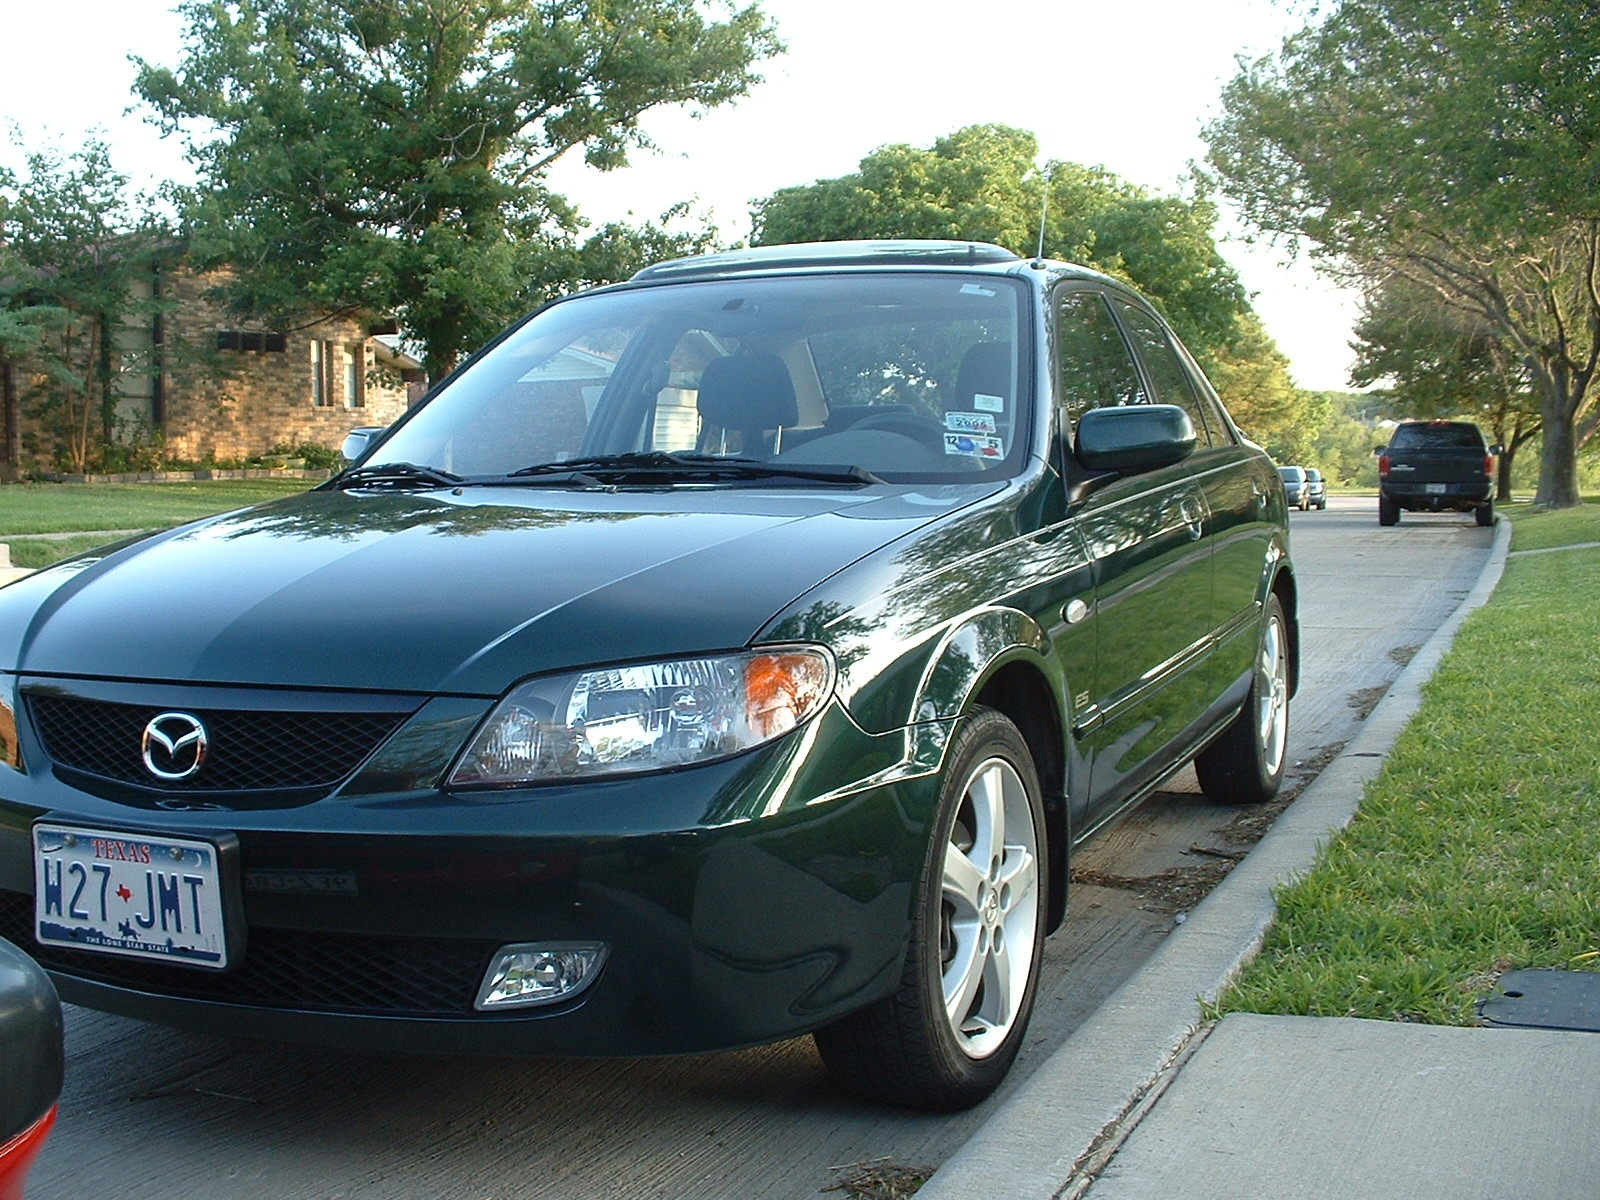 2003 mazda protege exterior pictures cargurus. Black Bedroom Furniture Sets. Home Design Ideas